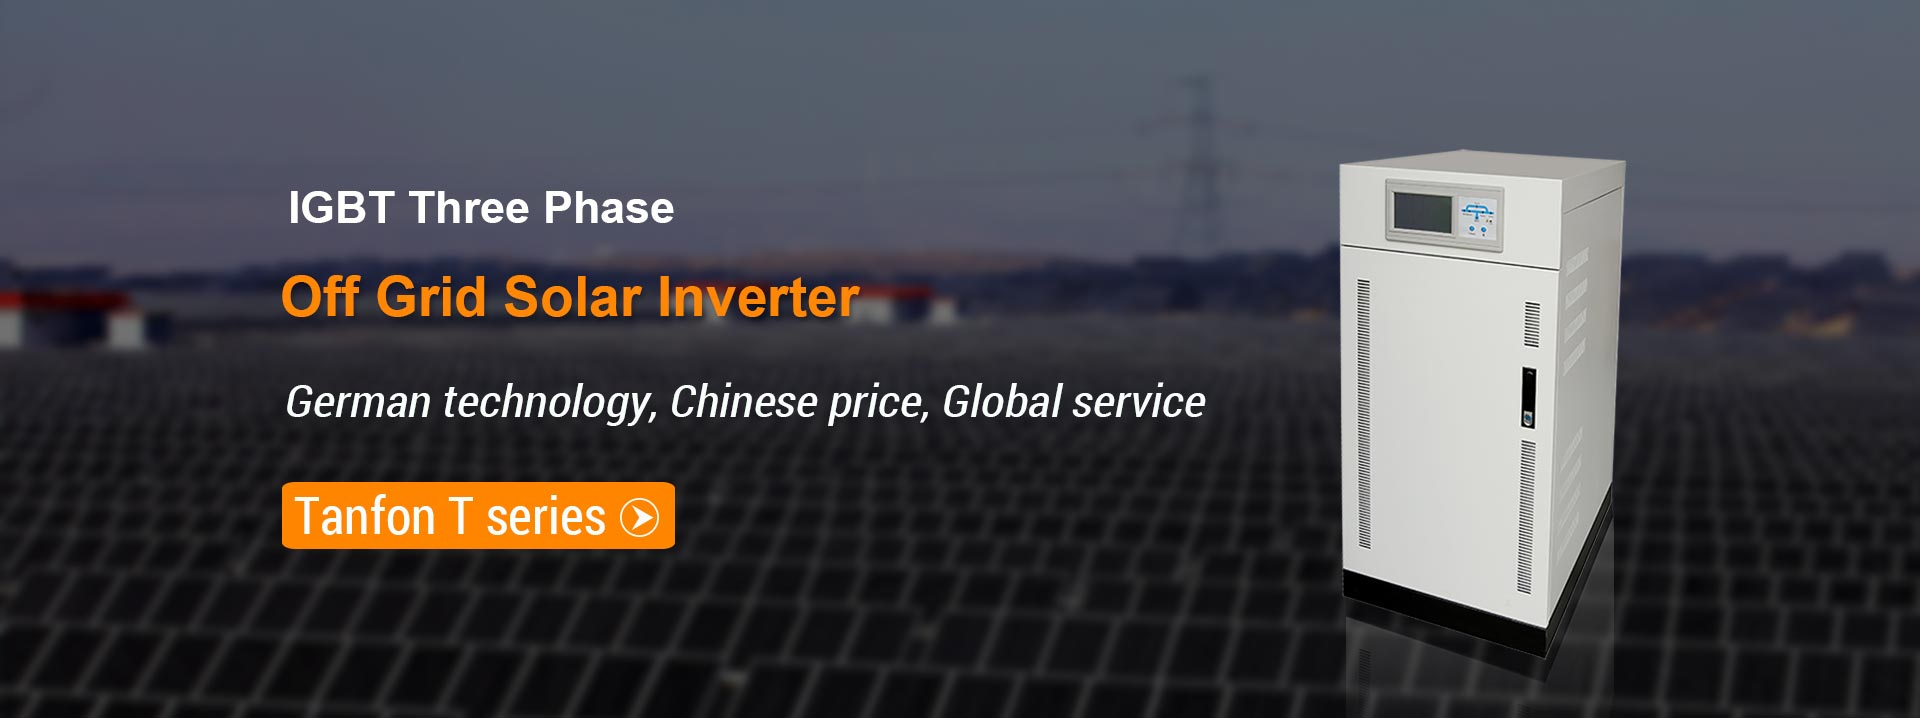 T series off grid solar inverter IGBT